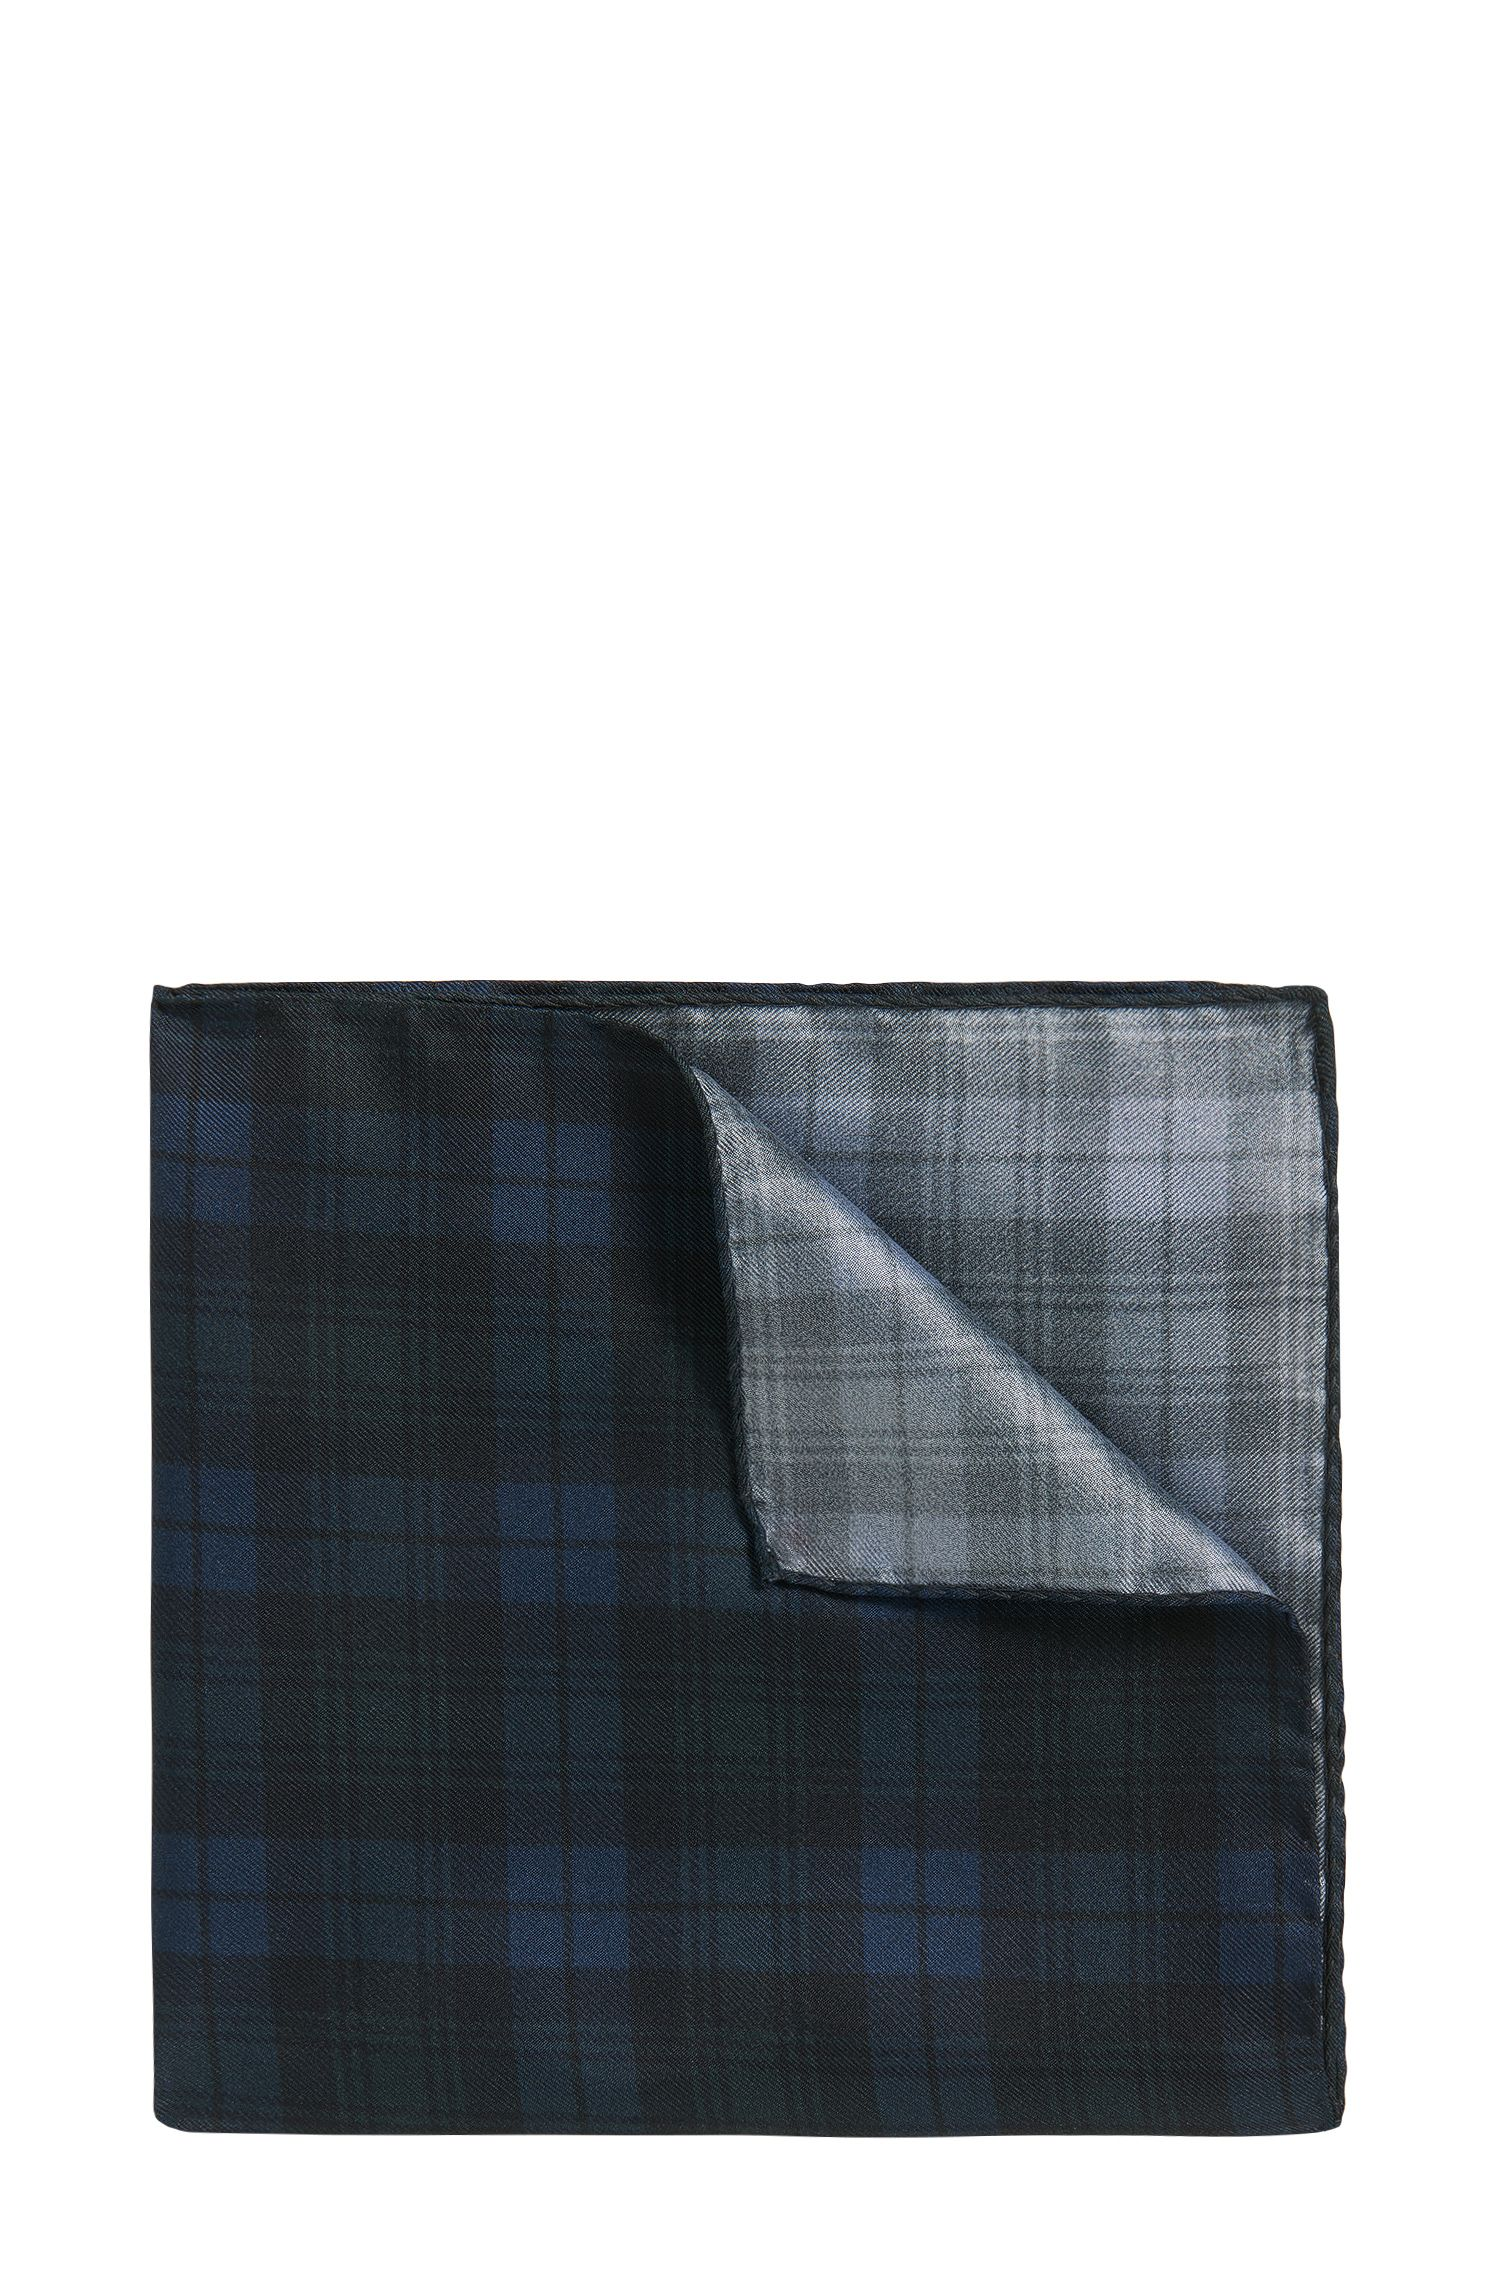 Blackwatch-check silk pocket square